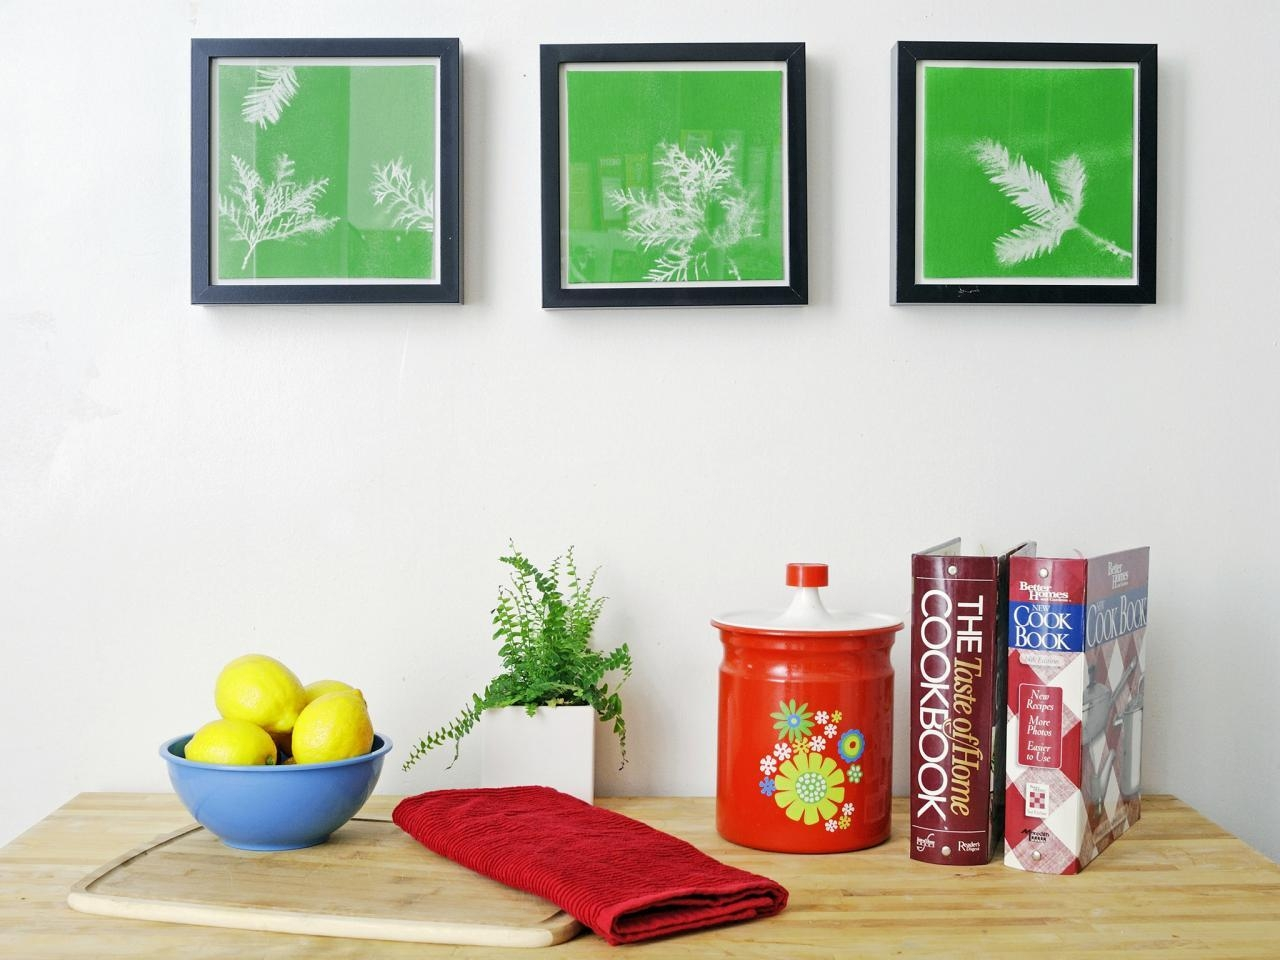 Turn Leaves And Foliage Into Diy Canvas Wall Art | Hgtv Intended For Turn Pictures Into Wall Art (Image 14 of 20)